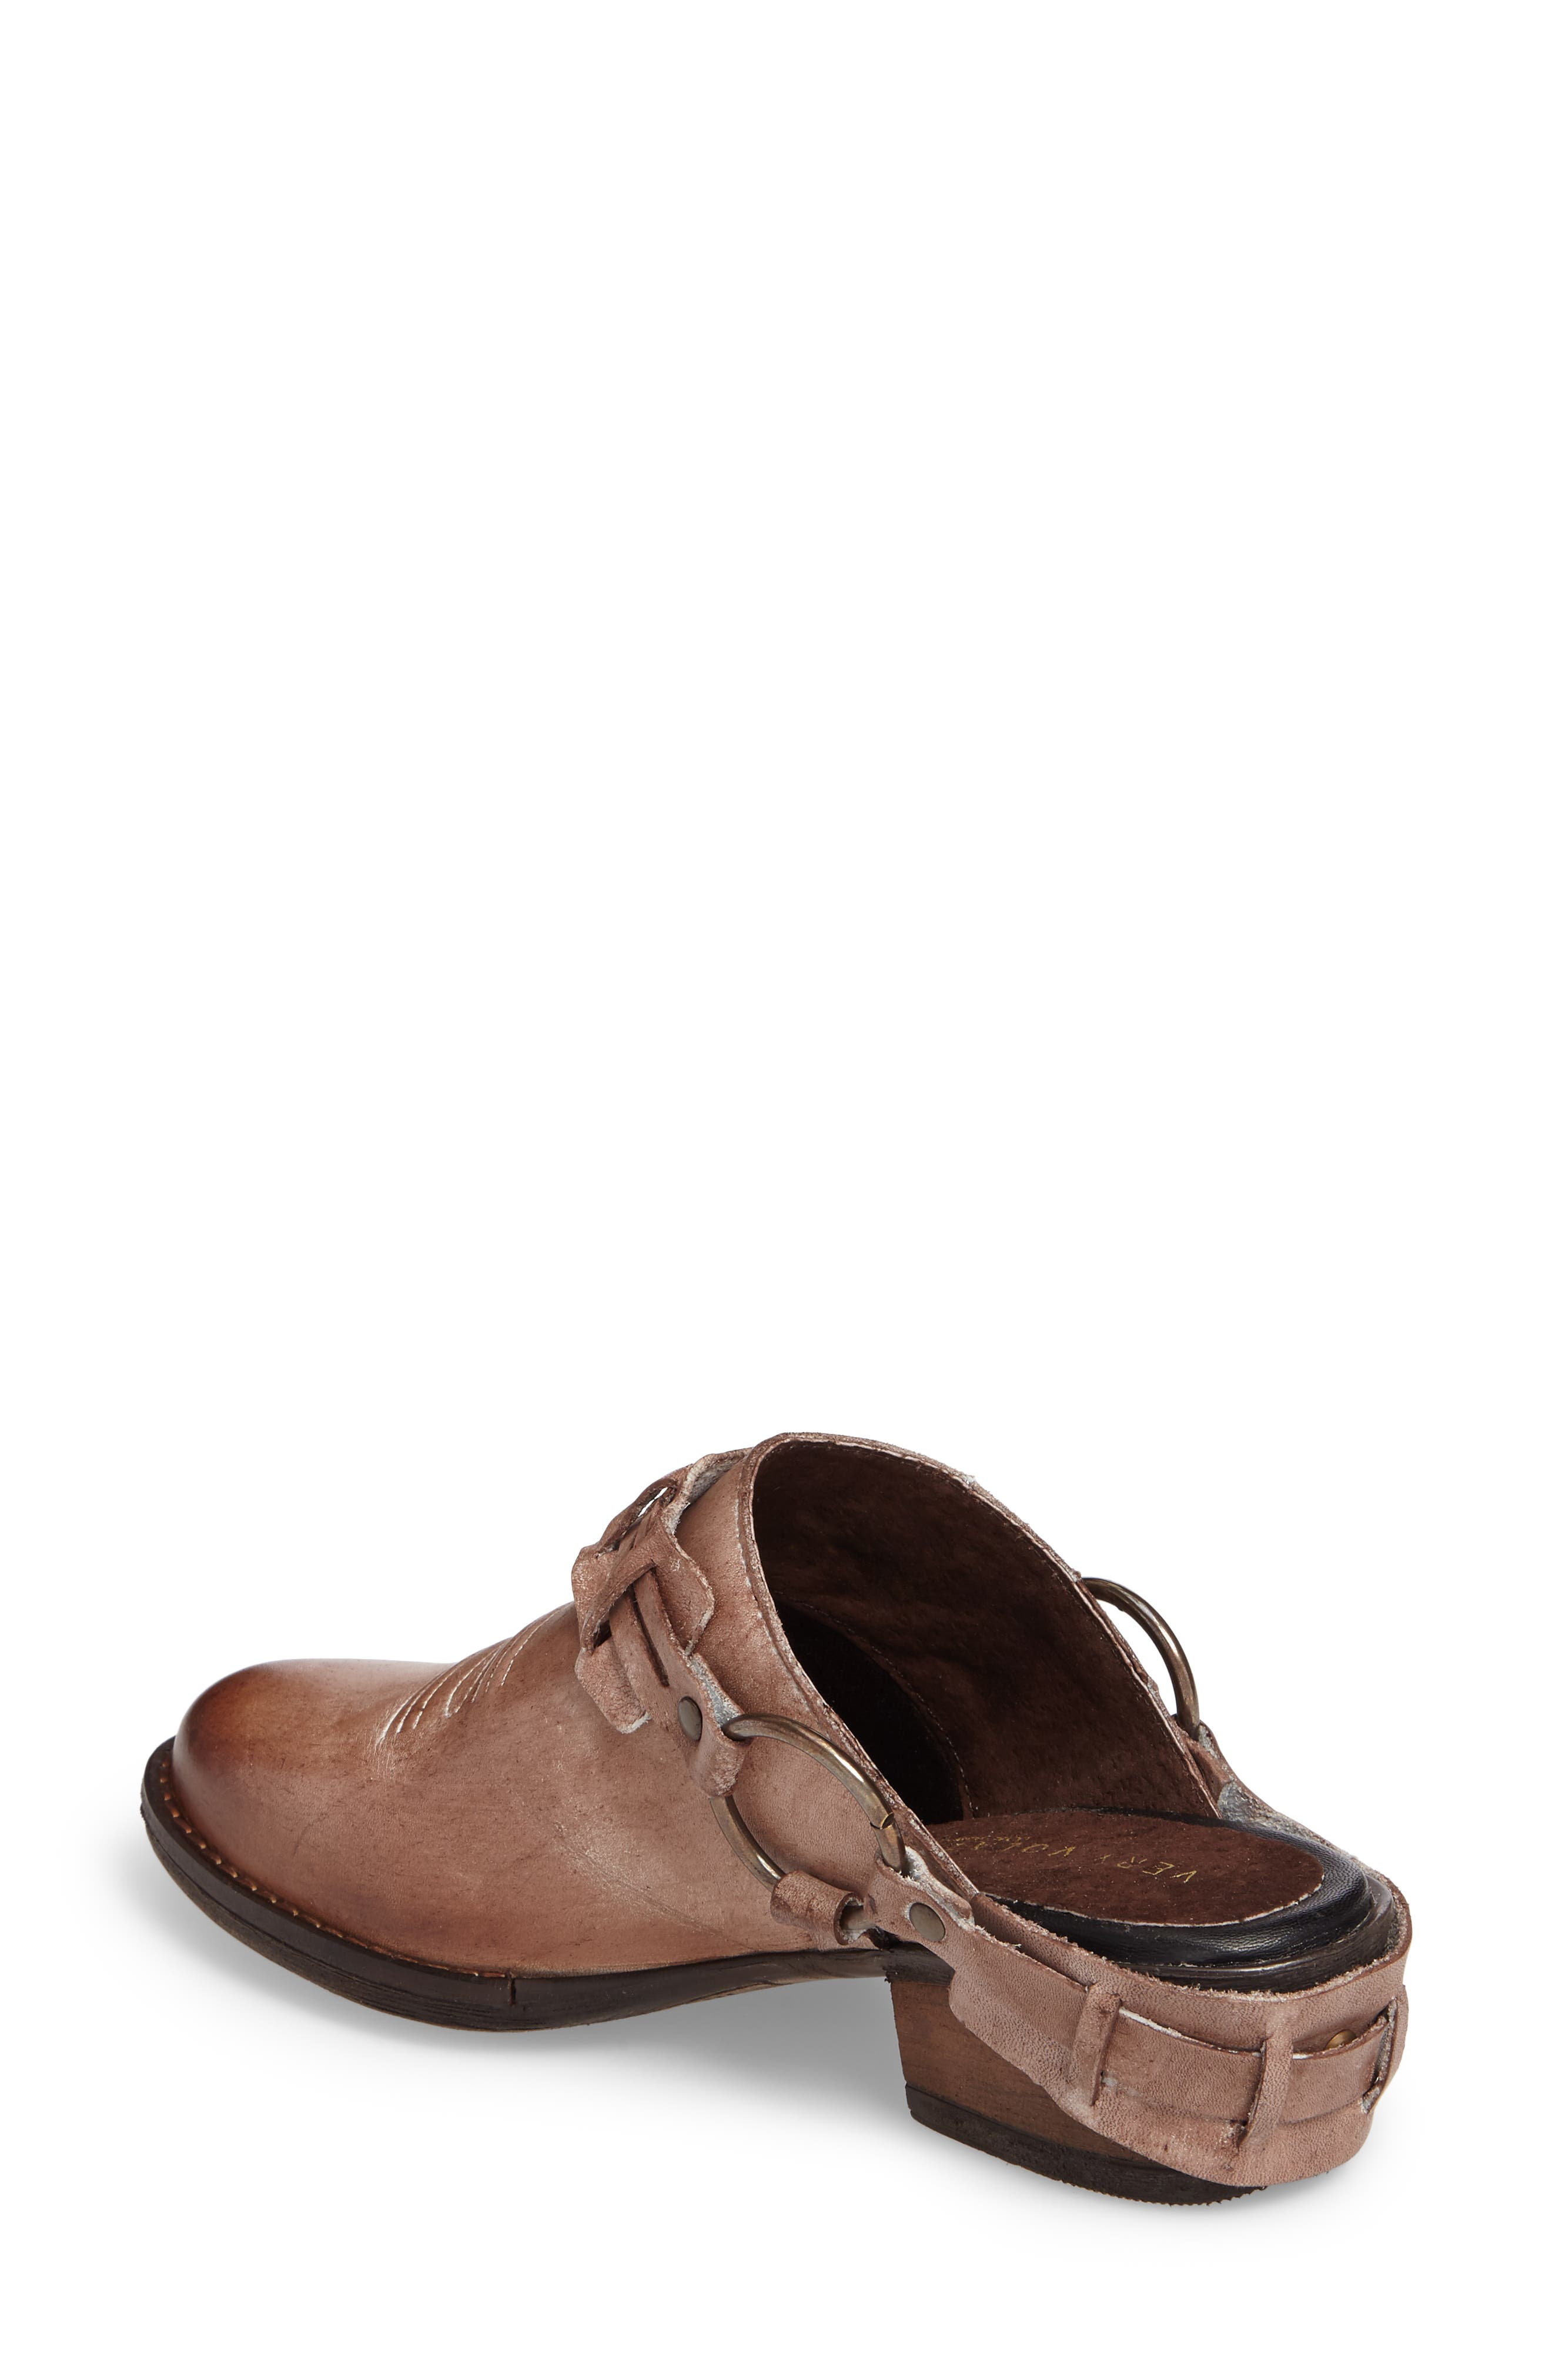 Eriko Western Harness Mule,                             Alternate thumbnail 2, color,                             Brown